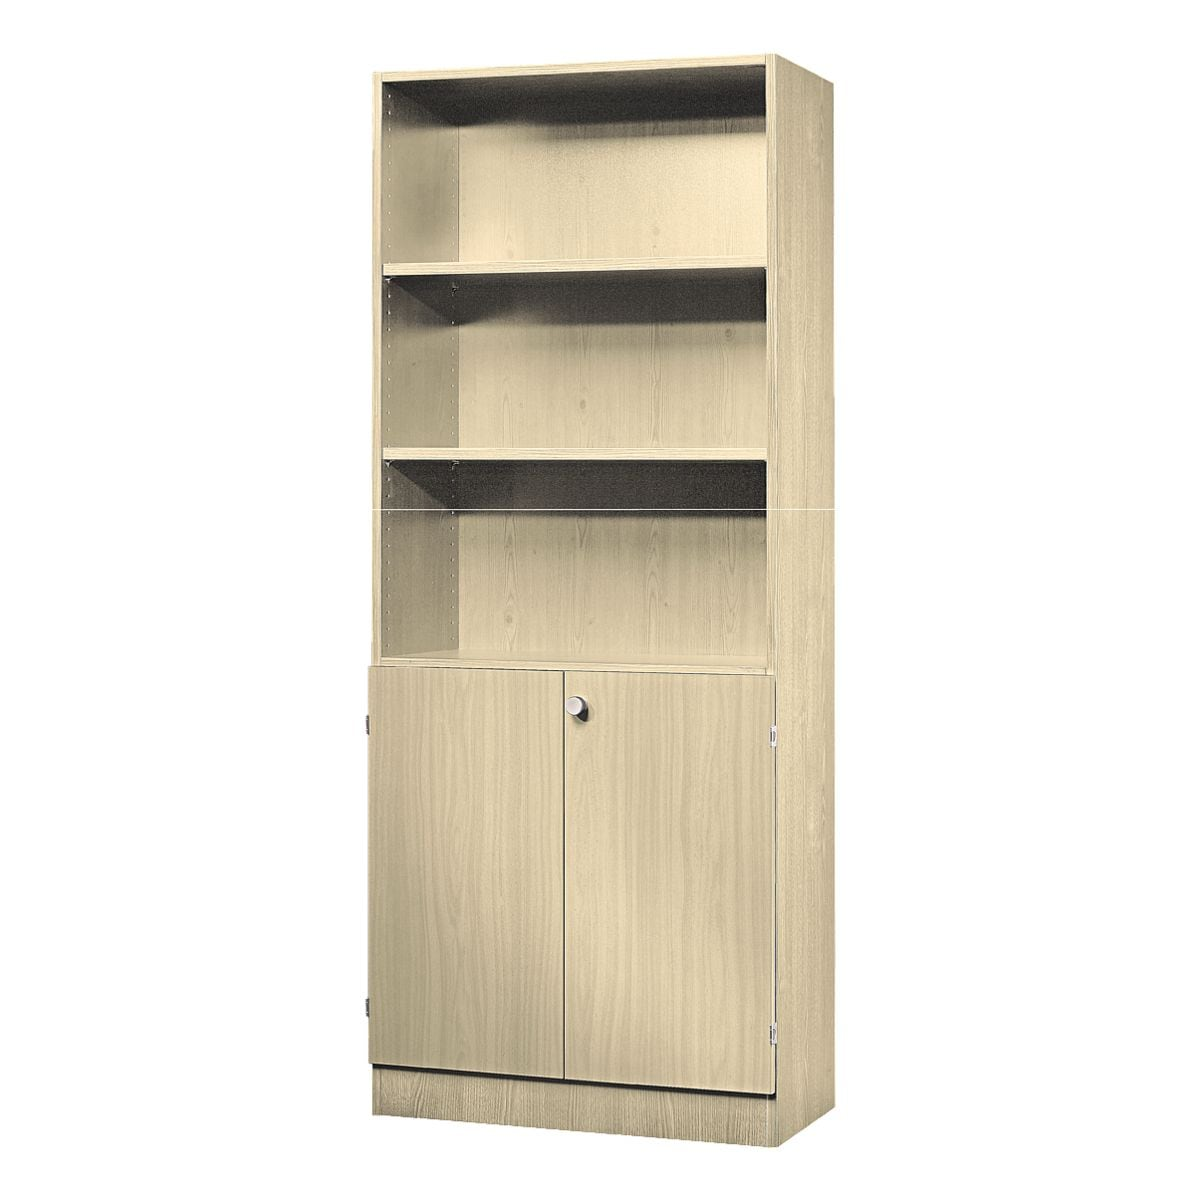 otto office premium mehrzweckschrank otto office line ii bei otto office g nstig kaufen. Black Bedroom Furniture Sets. Home Design Ideas